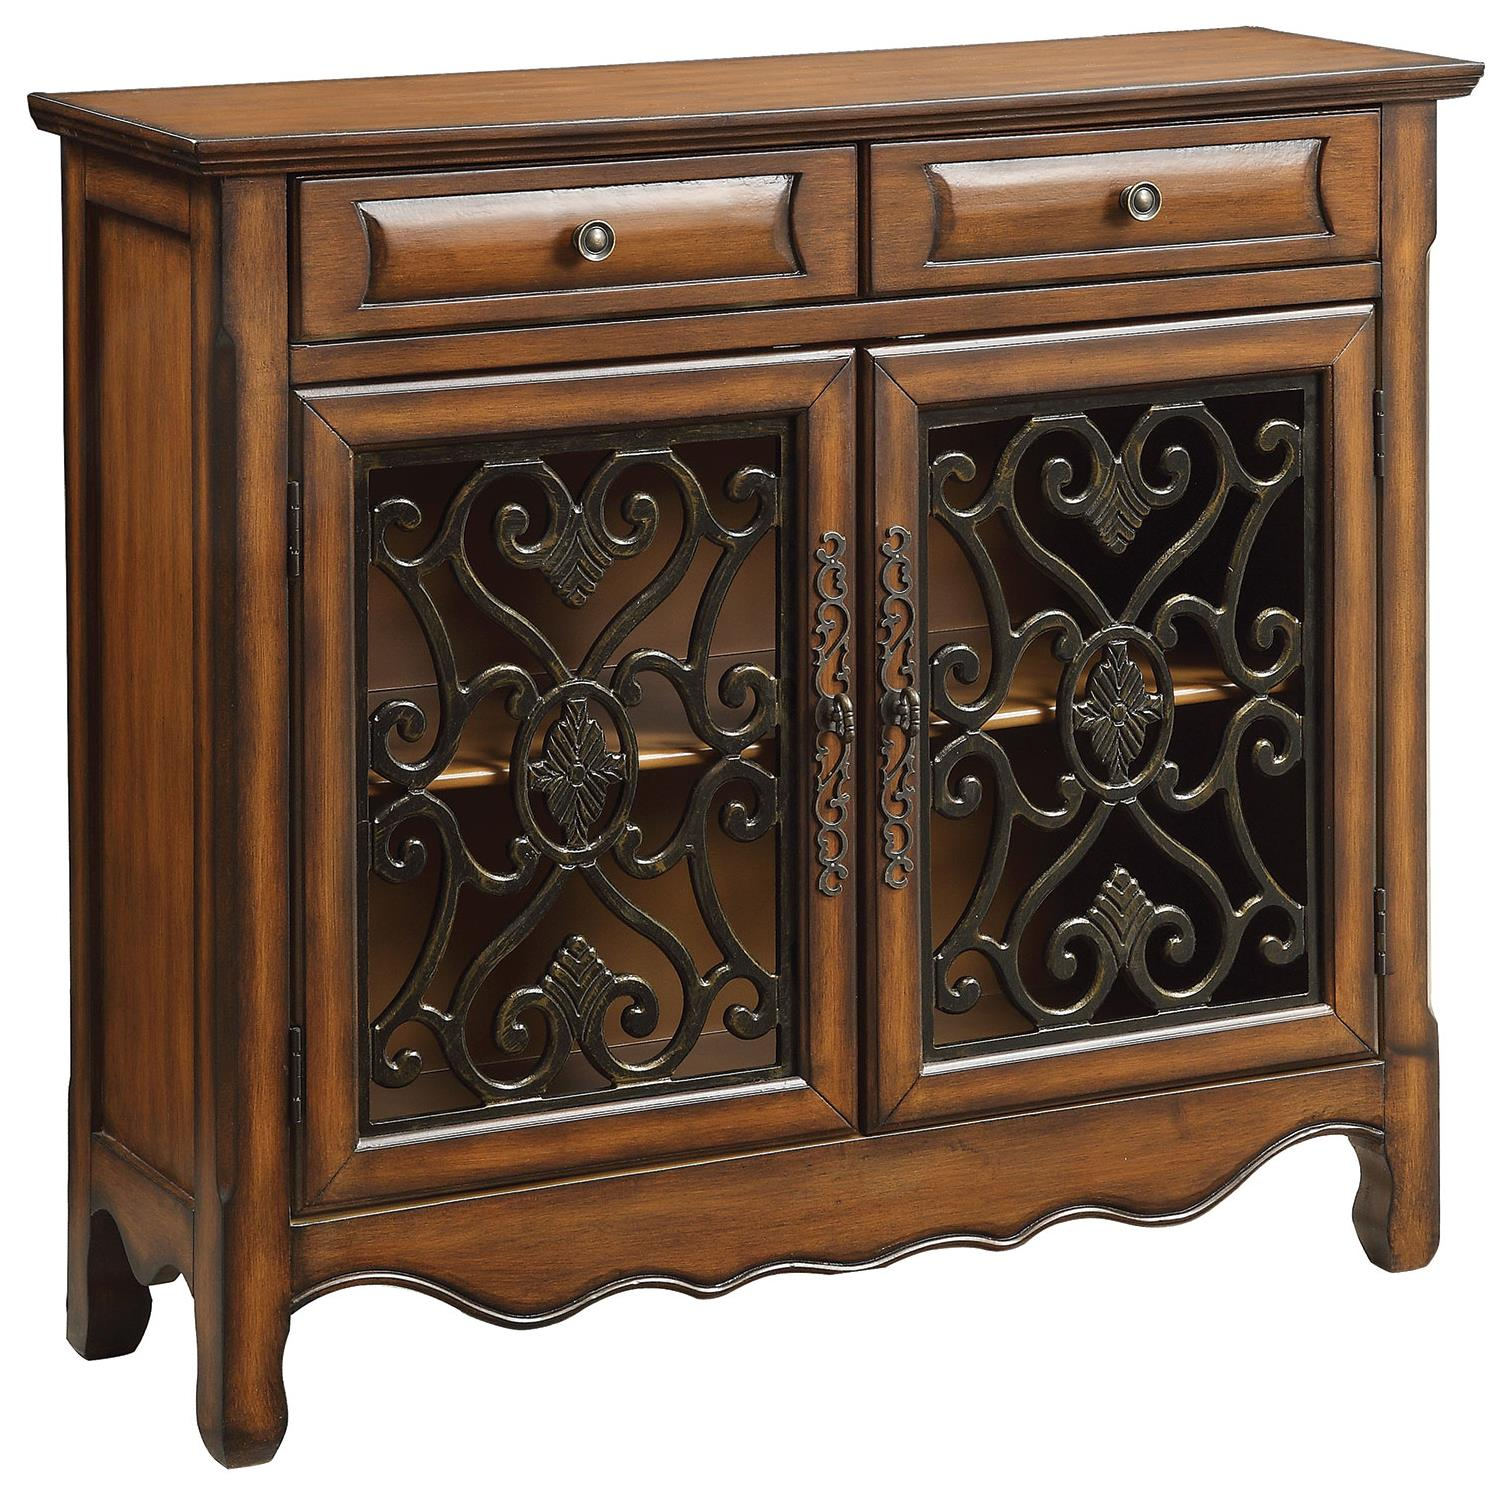 Accent Cabinets Accent Cabinet by Michael Alan CSR Select at Michael Alan Furniture & Design